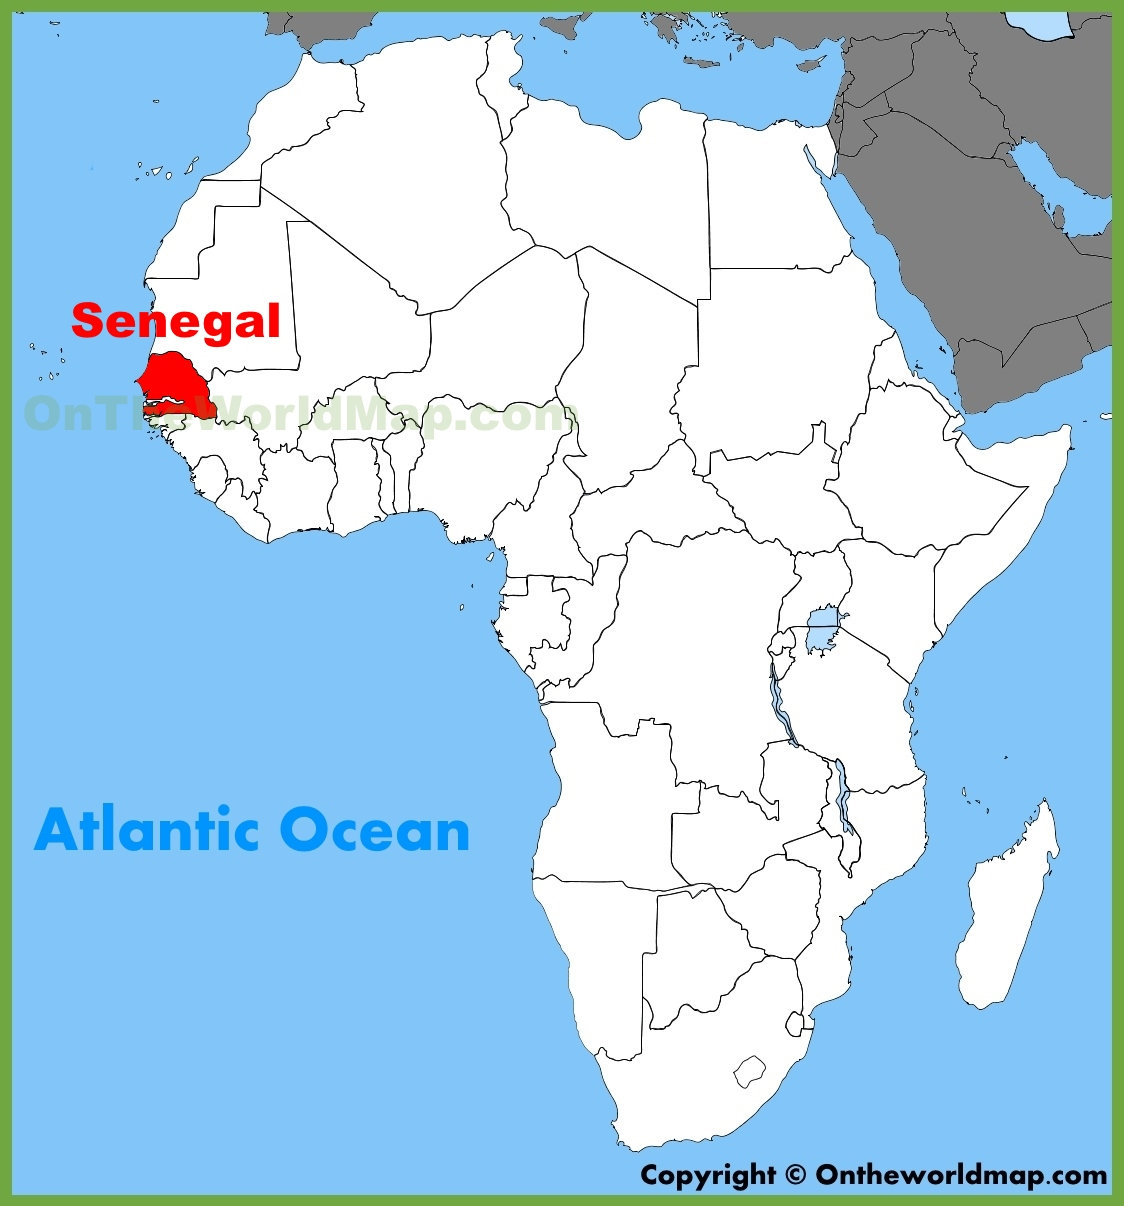 dakar senegal africa map